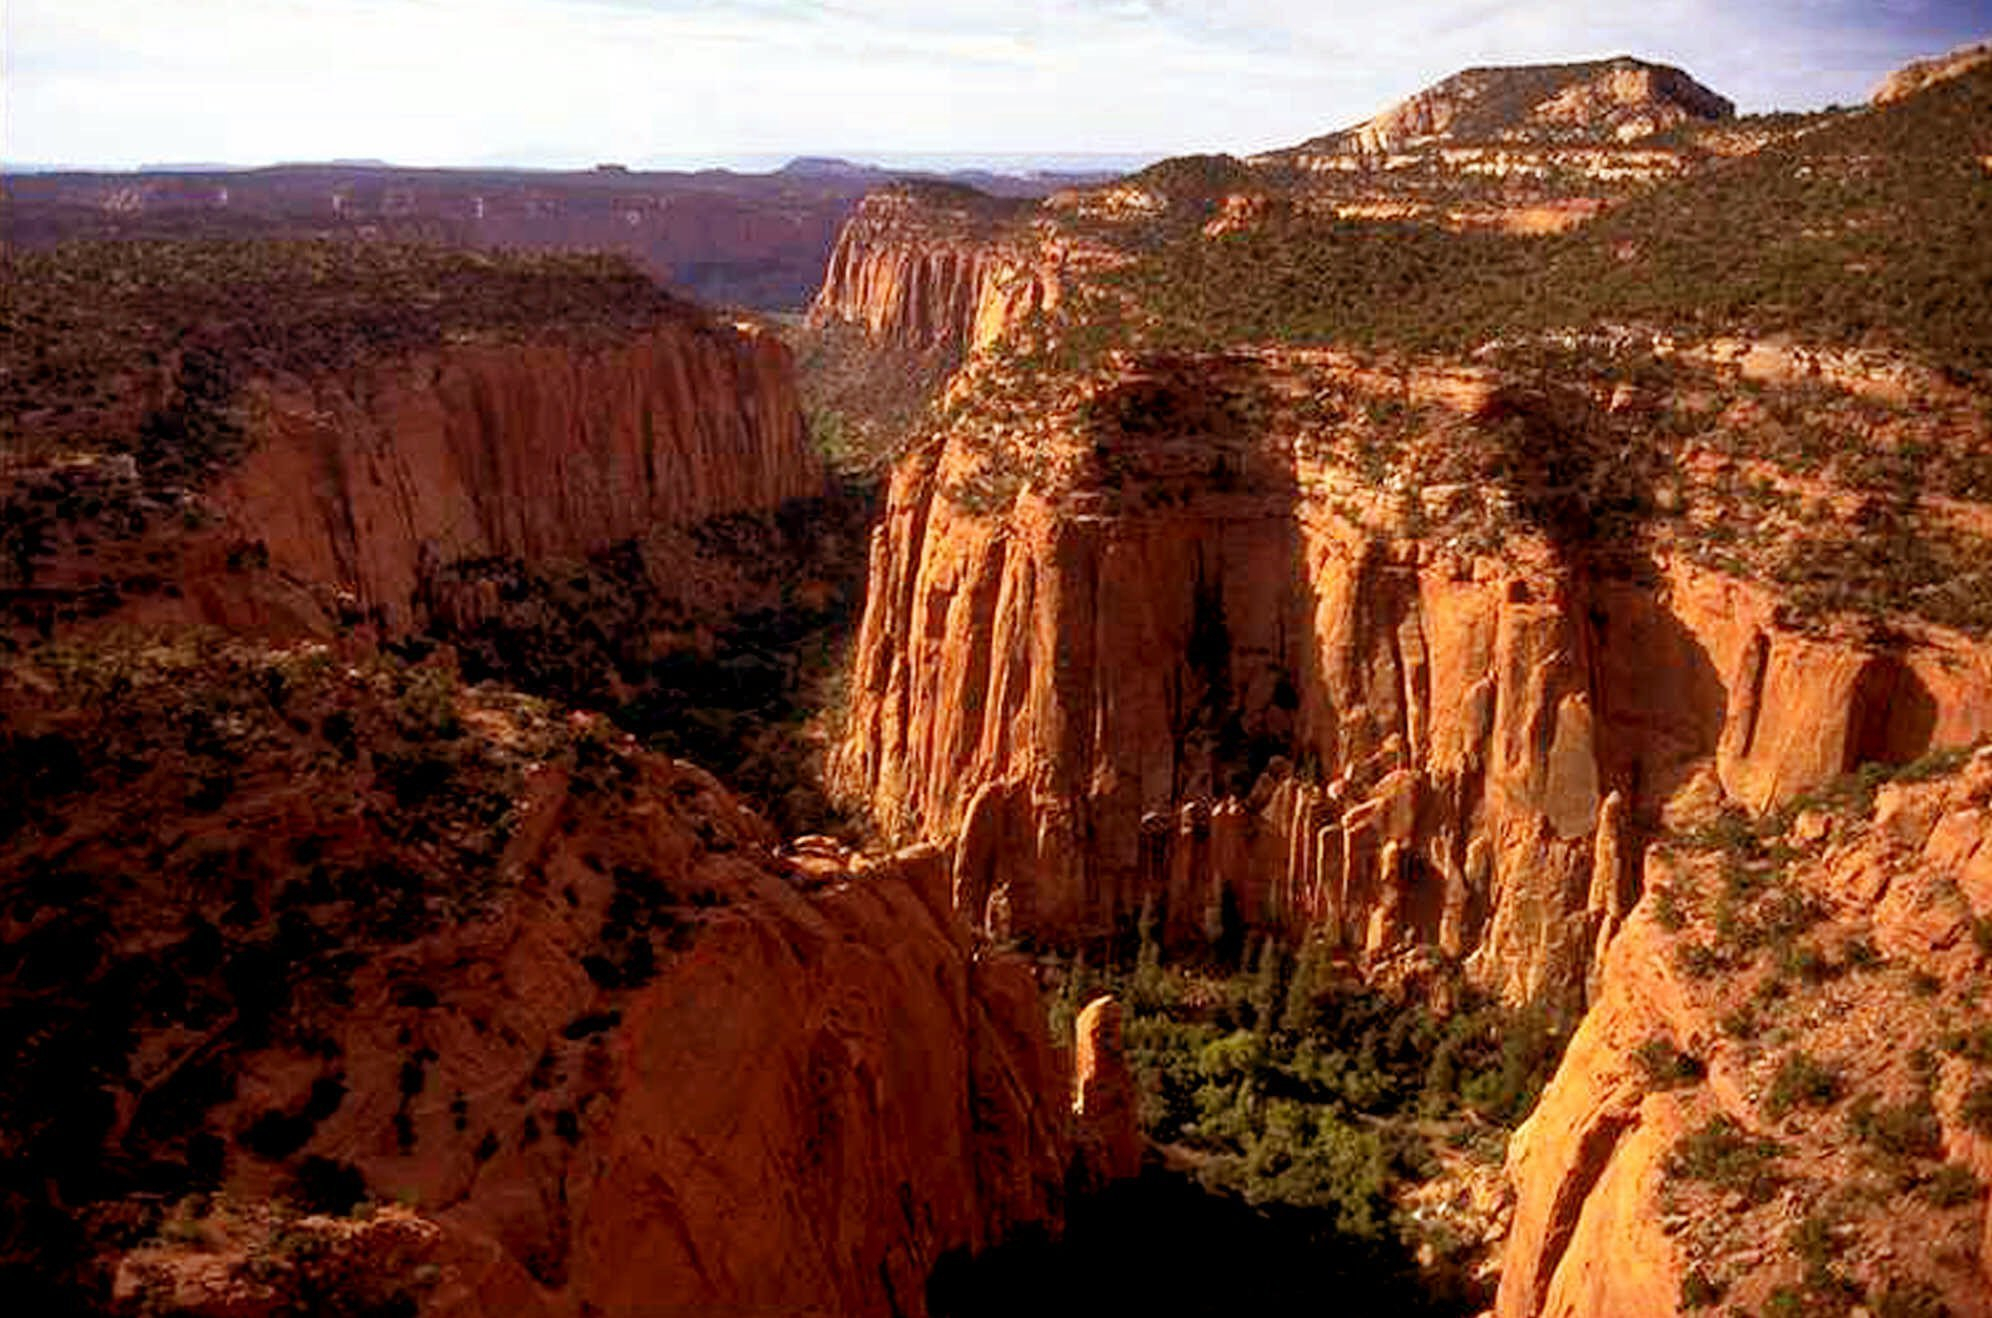 In this undated file photo, the Upper Gulch section of the Escalante Canyons within Utah's Grand Staircase-Escalante National Monument features sheer sandstone walls, broken occasionally by tributary canyons. Utah has long stood out for going far beyond other Western states in trying to get back control of its federally protected lands. When President Donald Trump on Monday, Dec. 4, 2017, announces he's going to shrink two national monuments in the state, his warm welcome will stand out in a region that is normally protective of its parks and monuments. (AP Photo/Douglas C. Pizac, File)<p></p>